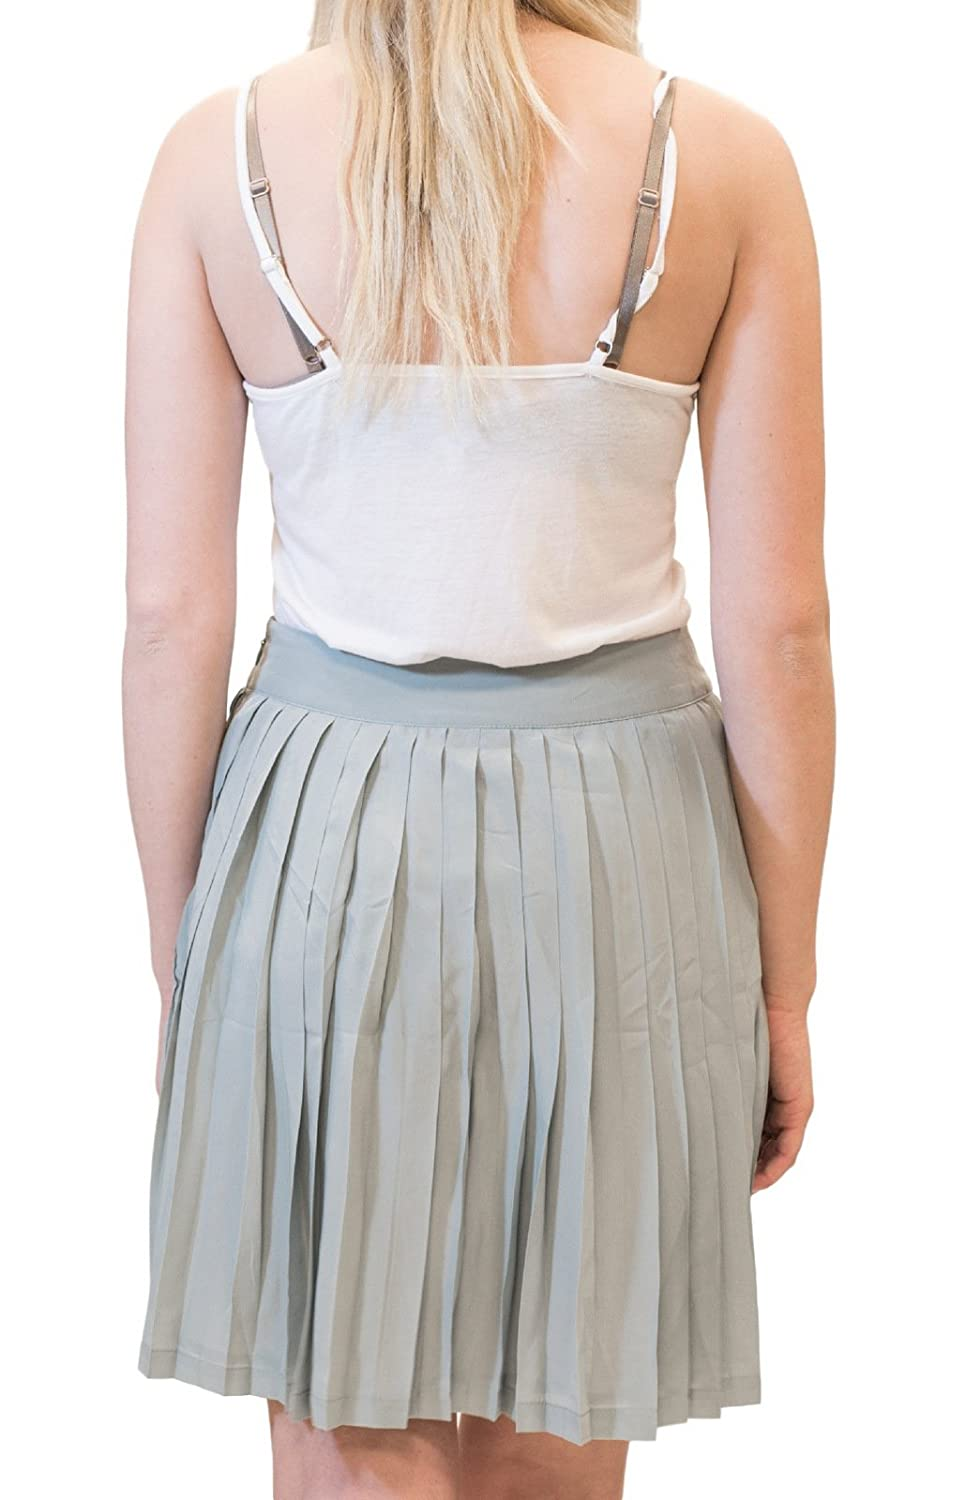 X-Large Darling Boutique Clothing Joanne High Waist A-line Skirt Ash Grey DLS12172